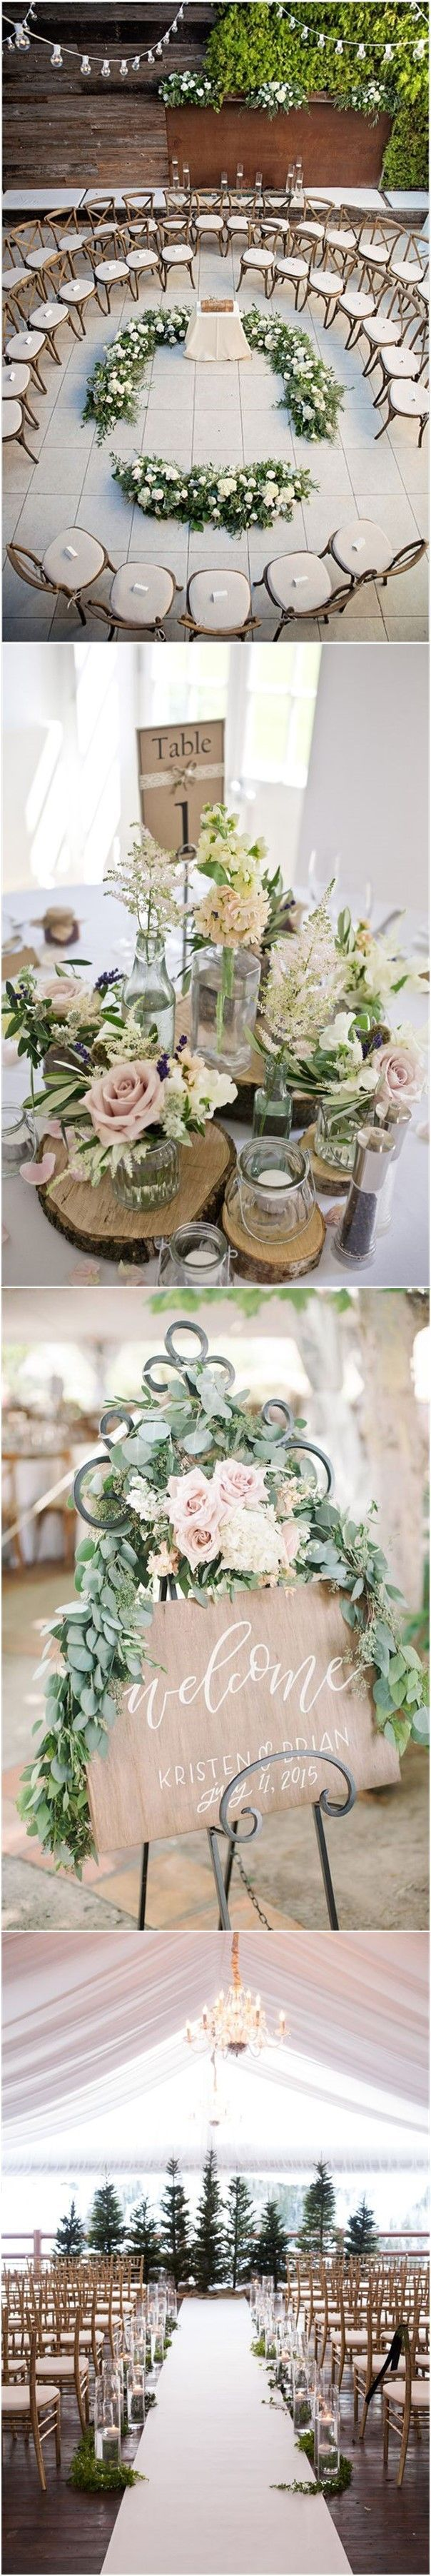 Green Wedding | Rustic Wedding Country Weddings » 25 Rustic Outdoor Wedding Ceremony Decorations Ideas » ❤️ See more: http://www.weddinginclude.com/2017/06/rustic-outdoor-wedding-ceremony-decorations-ideas/